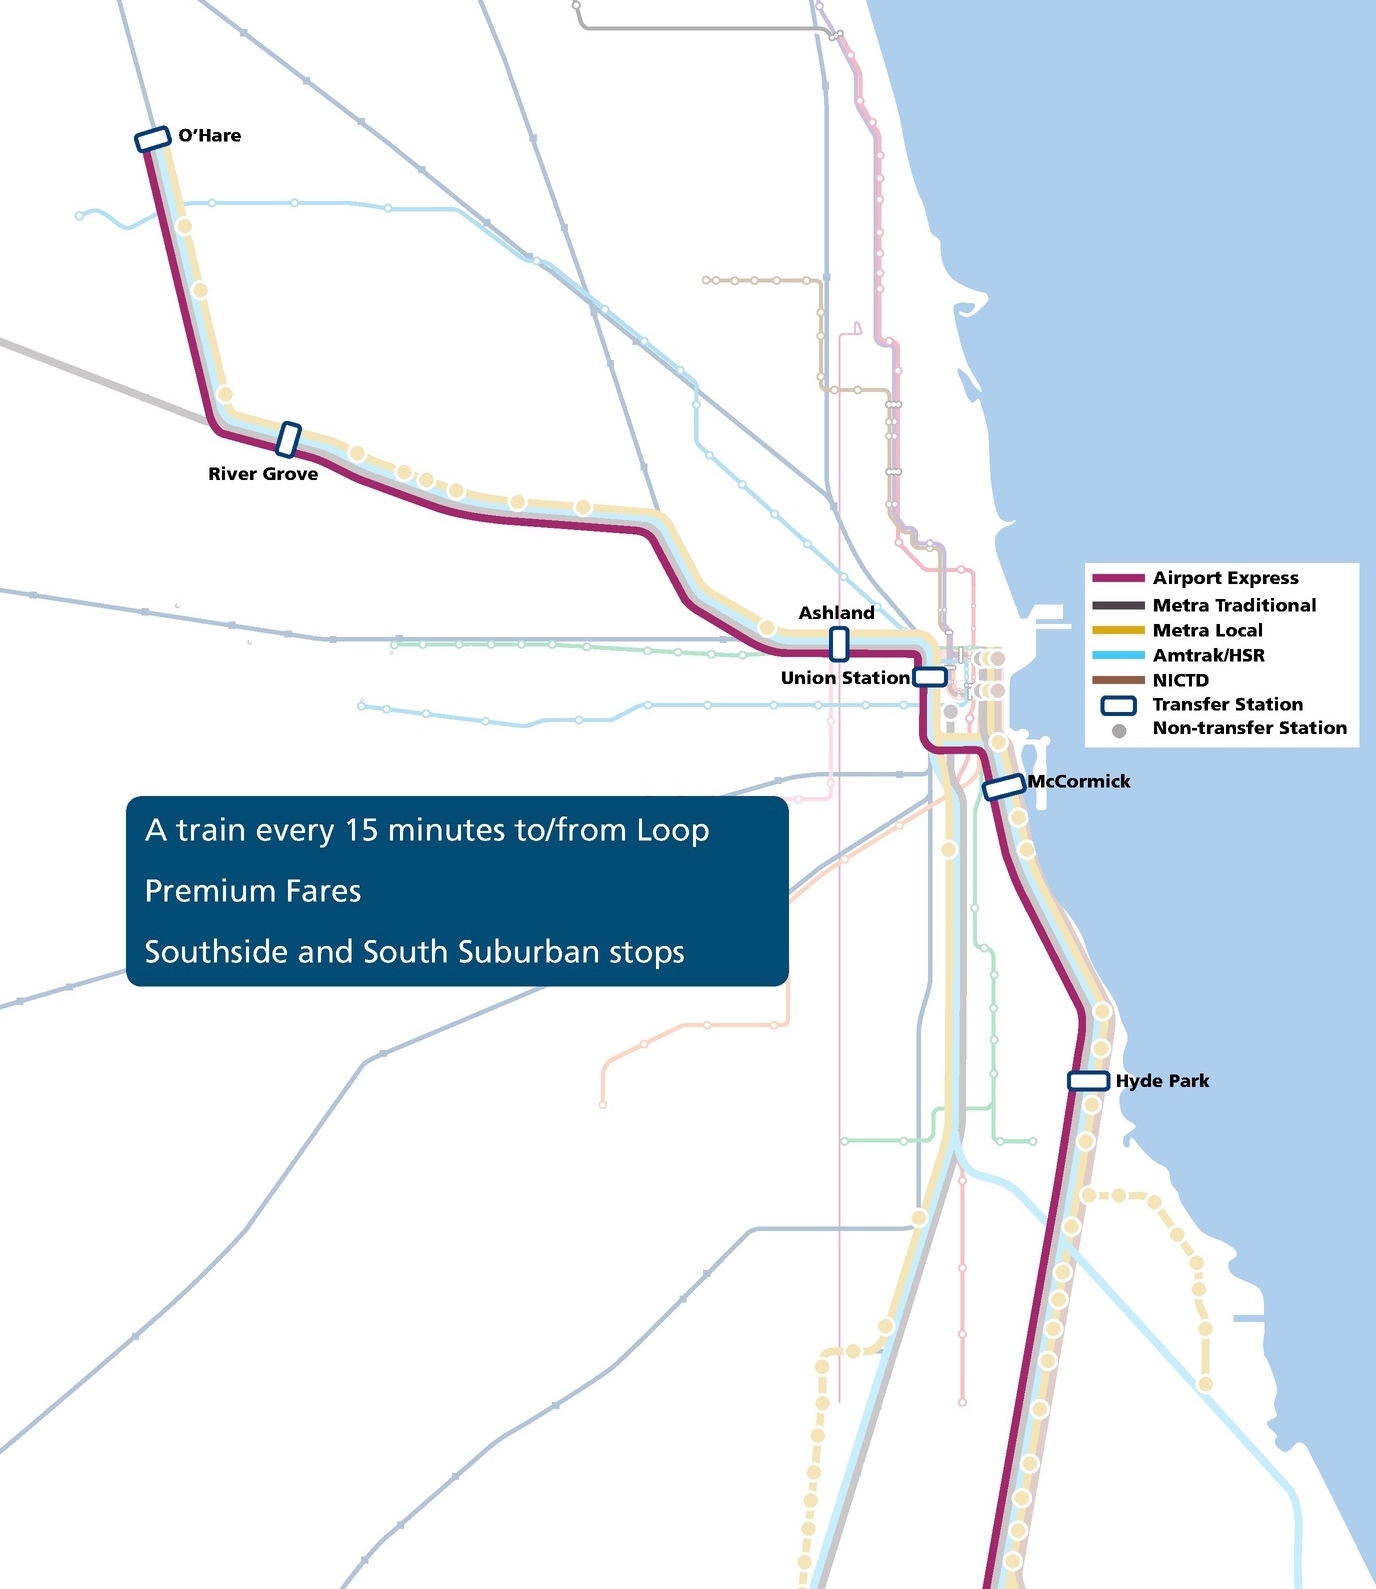 High Speed Rail Association Use Metra Tracks for OHare Express